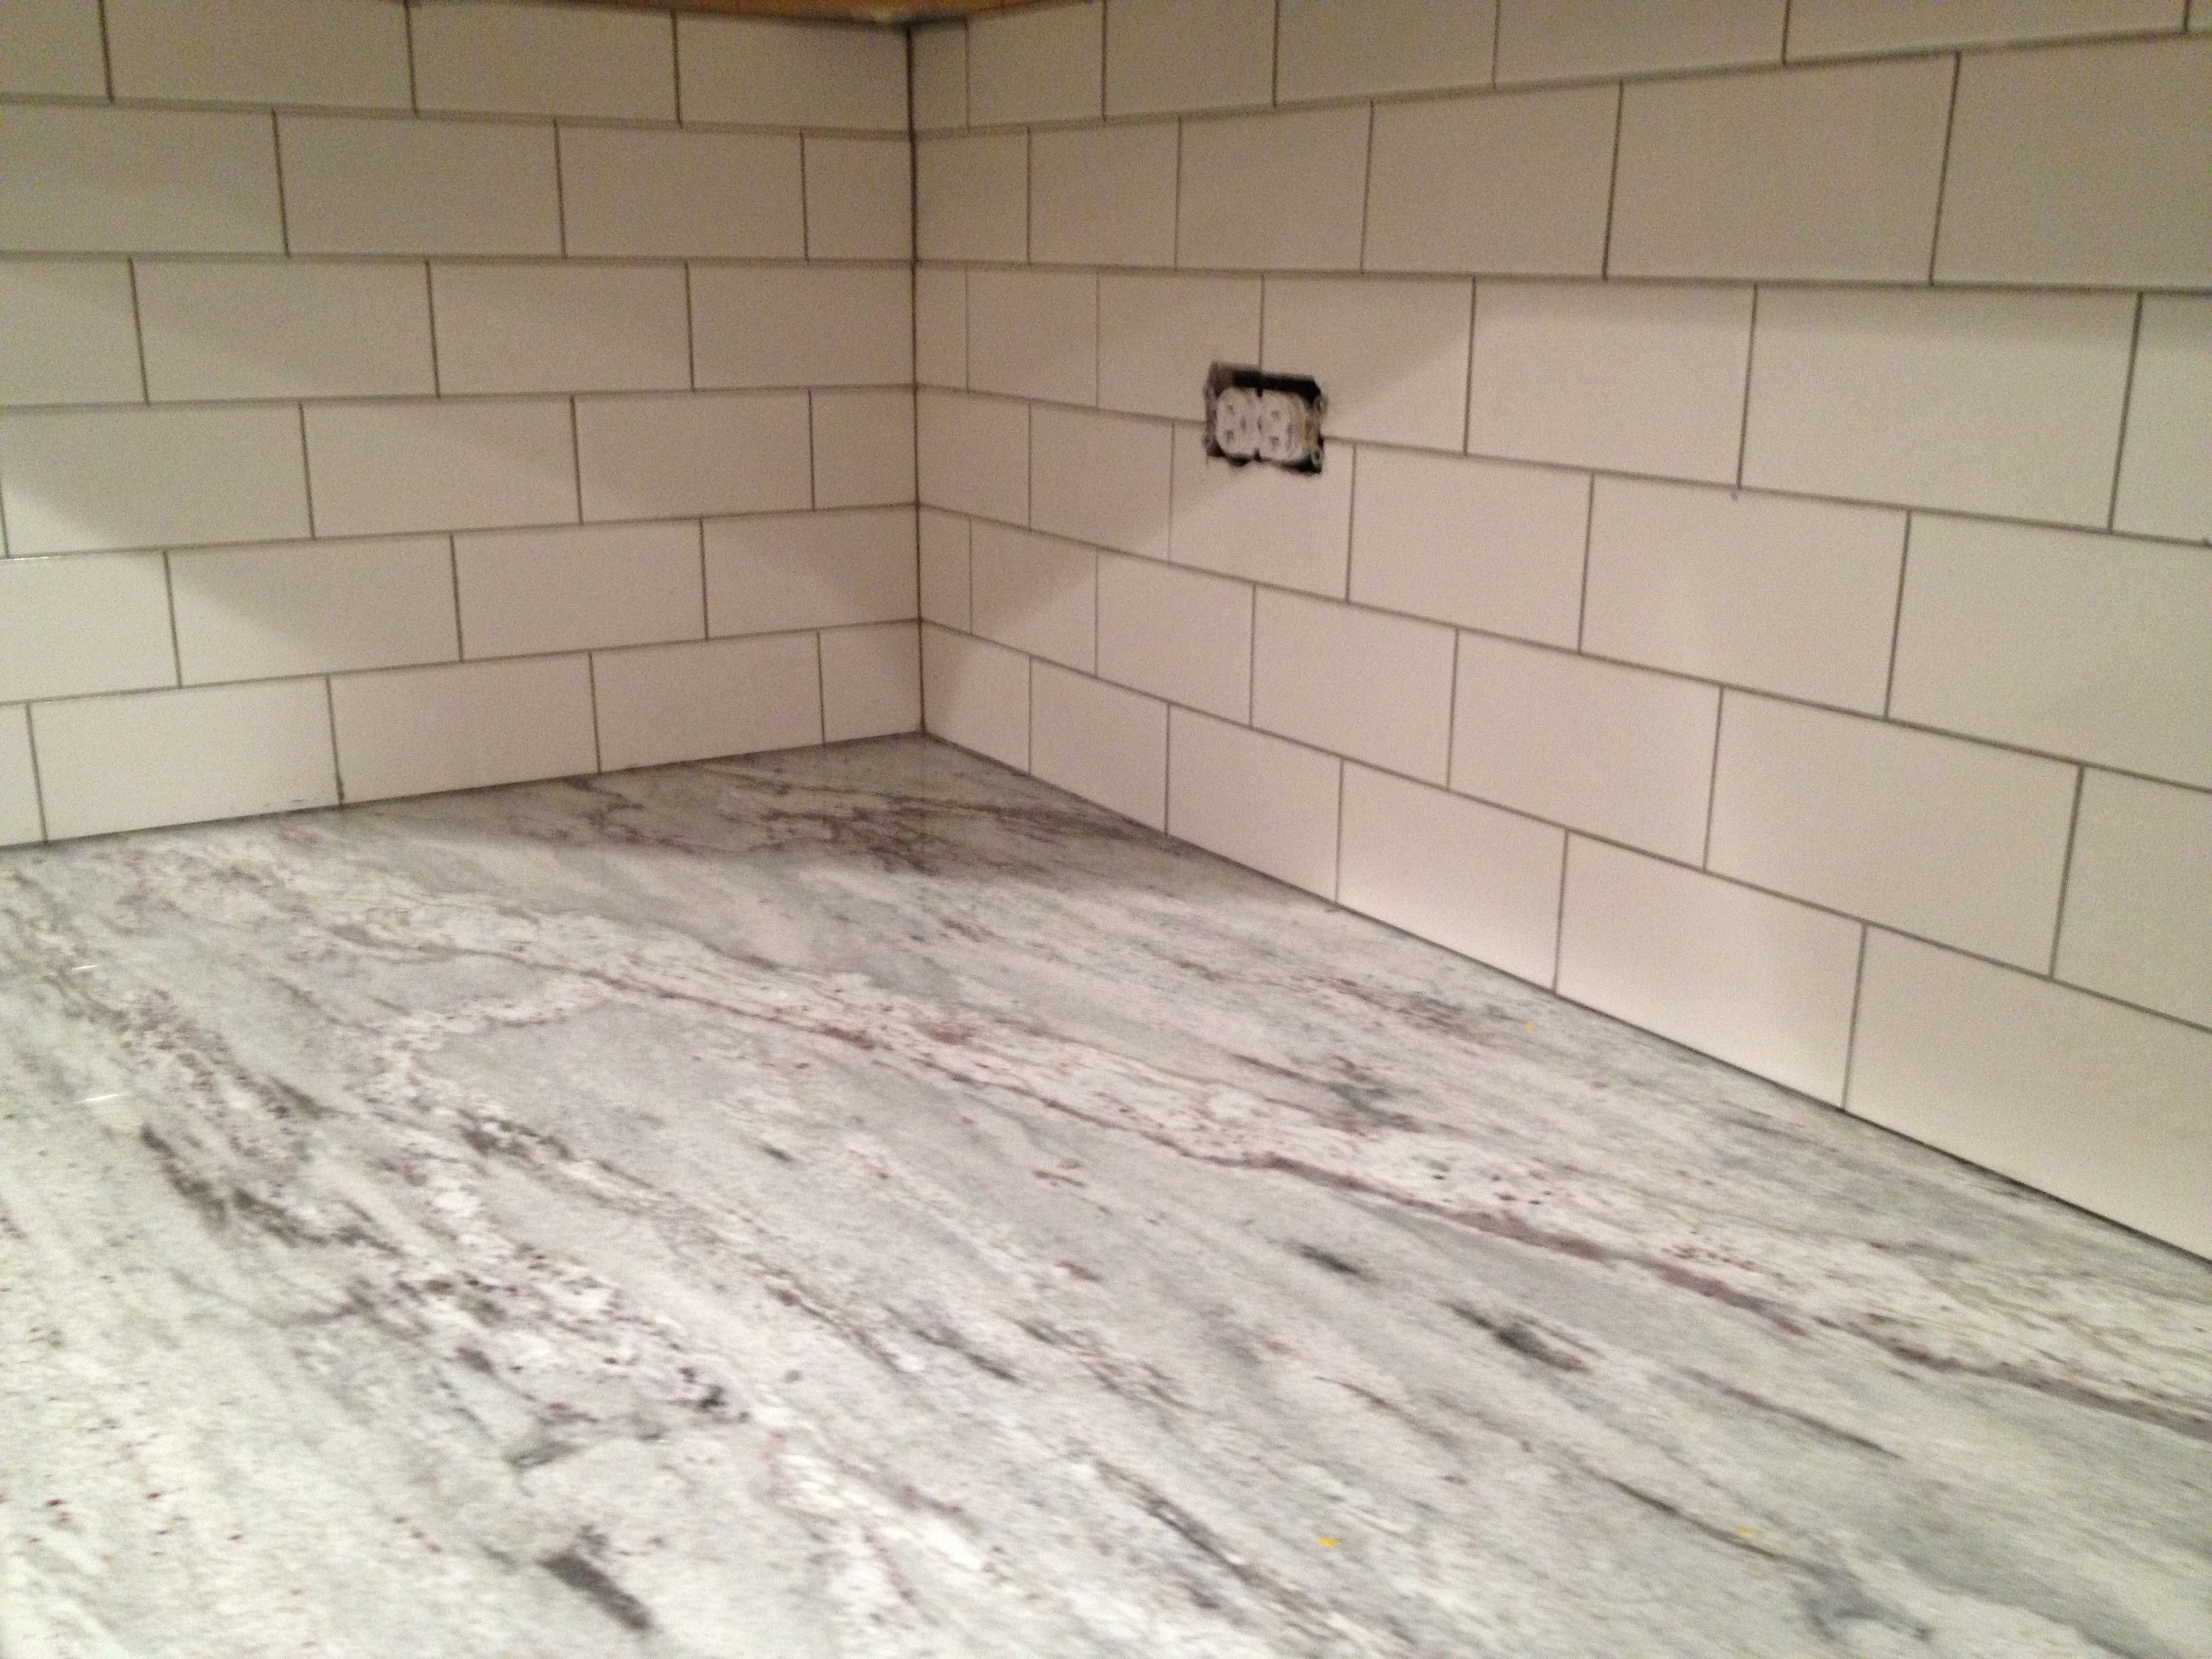 34 Backsplash Subway Tile Porcelain Home